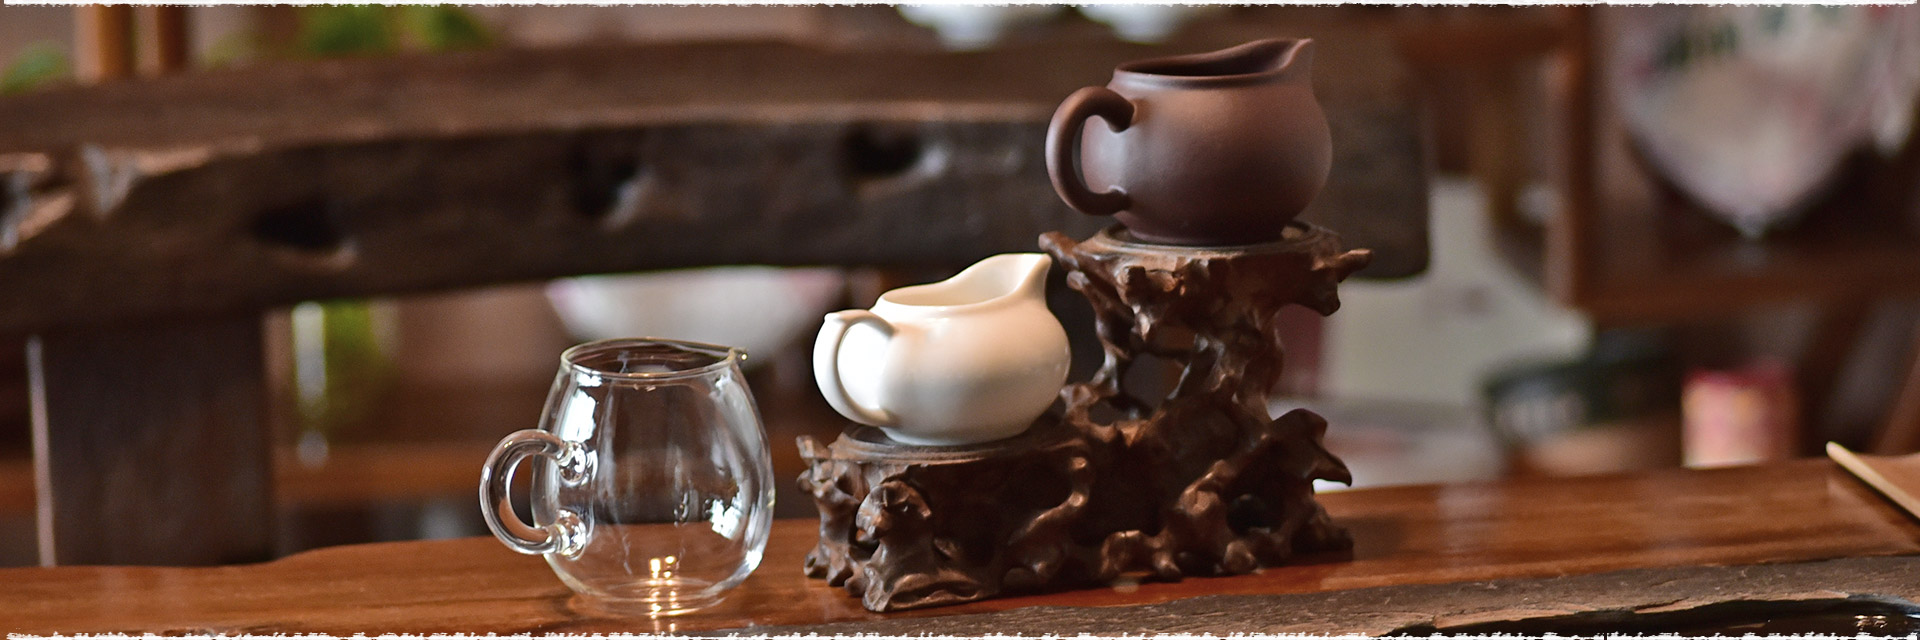 Tea Pitcher, also called Fair Cup, why do we need it?